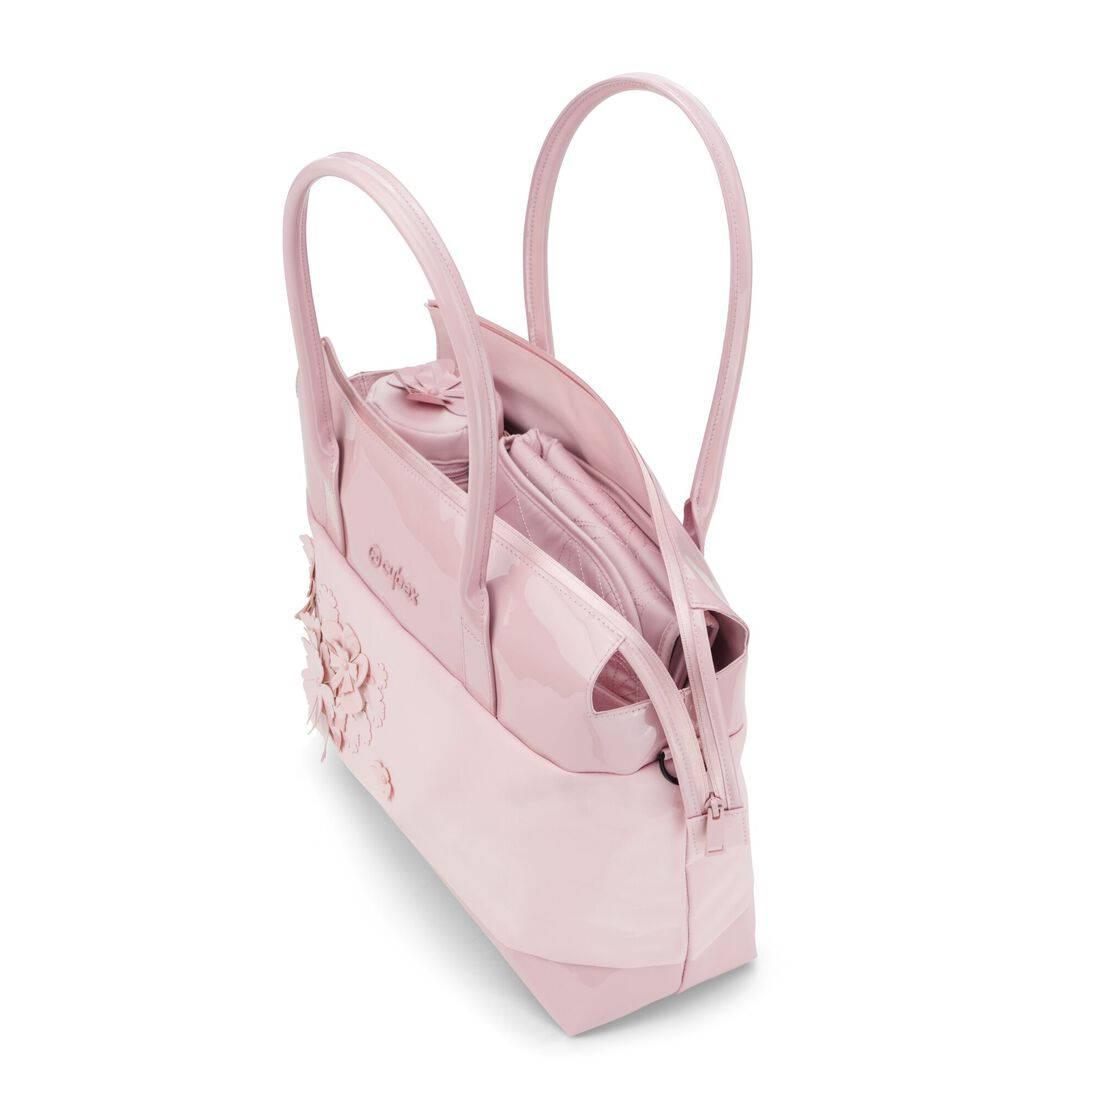 CYBEX Changing Bag Simply Flowers - Pale Blush in Pale Blush large image number 2